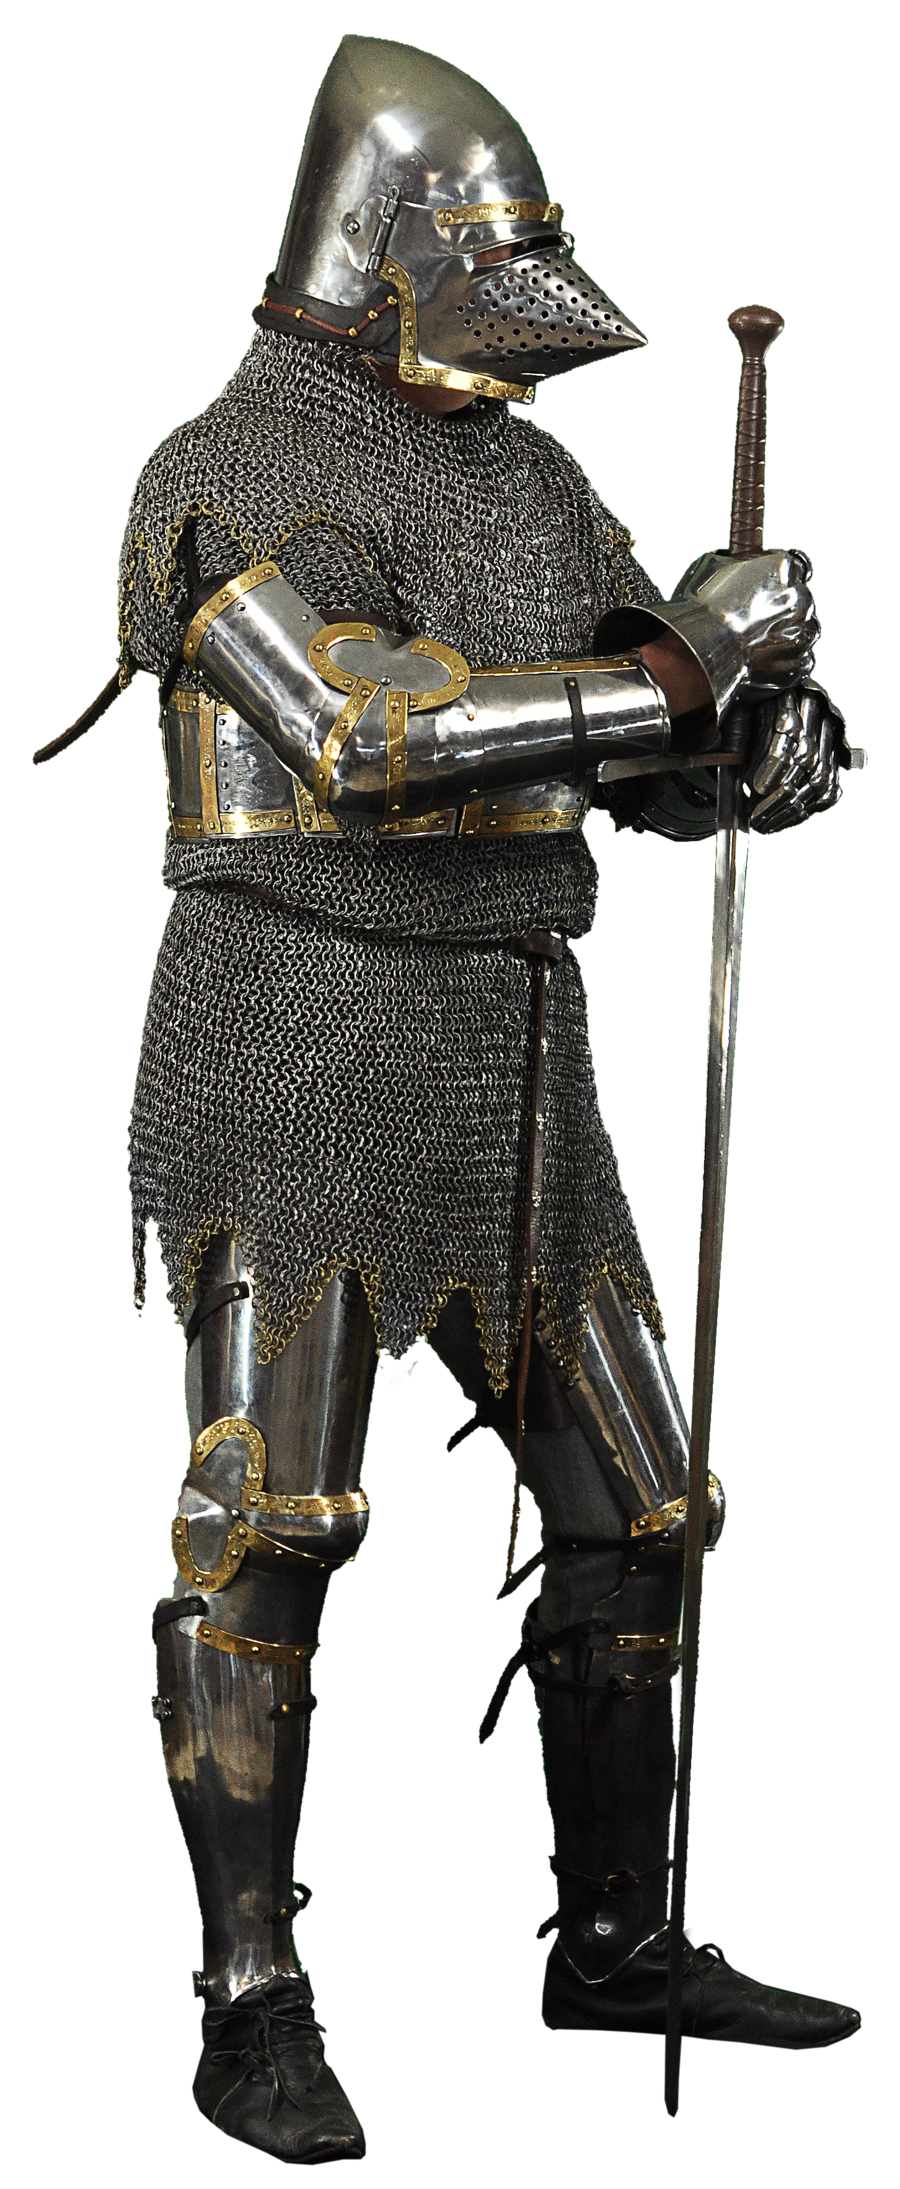 Medieval clipart knight armor. Medival png image purepng